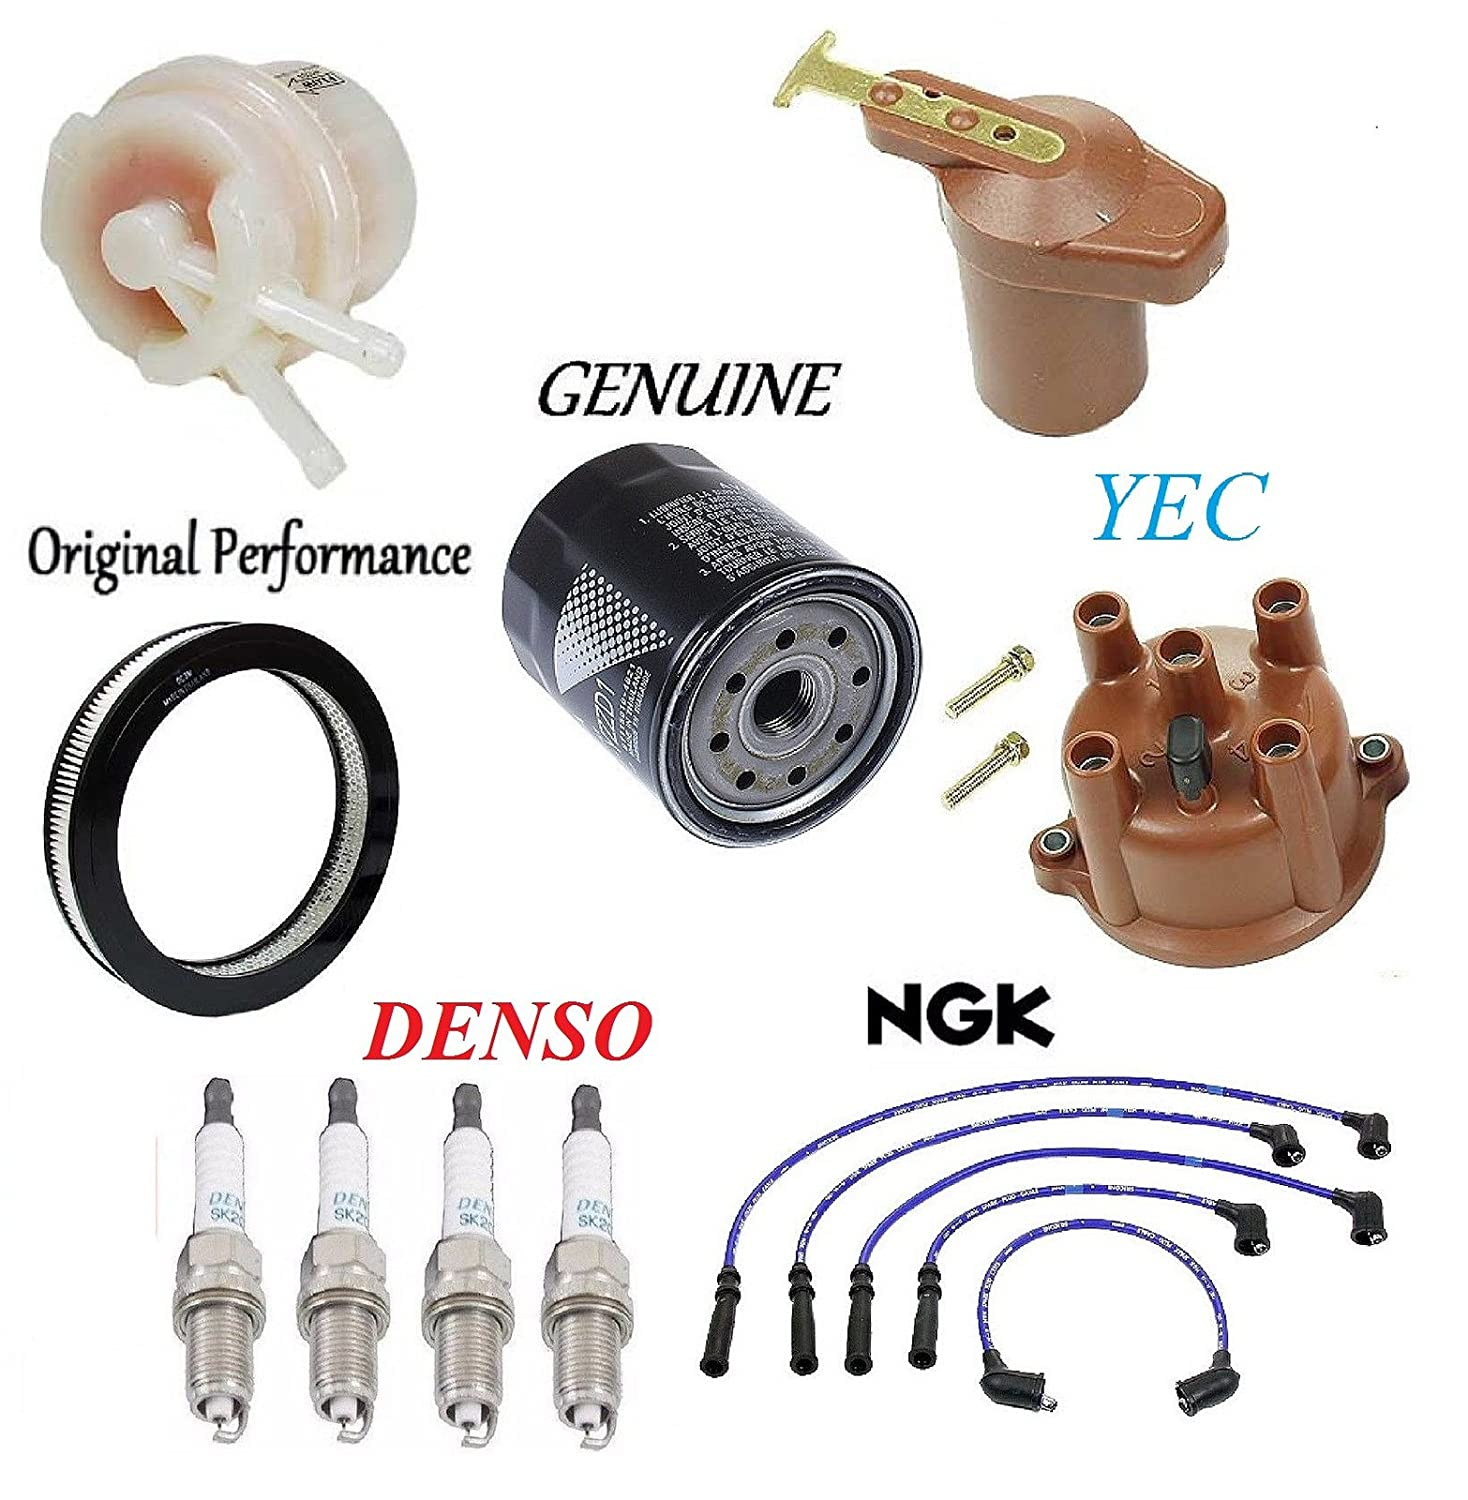 L4; 2.2L; 20R Eng.; Carb To 8//80 Tune Up Kit Filters Cap Rotor Plug Wire for Toyota Celica 1980 1982